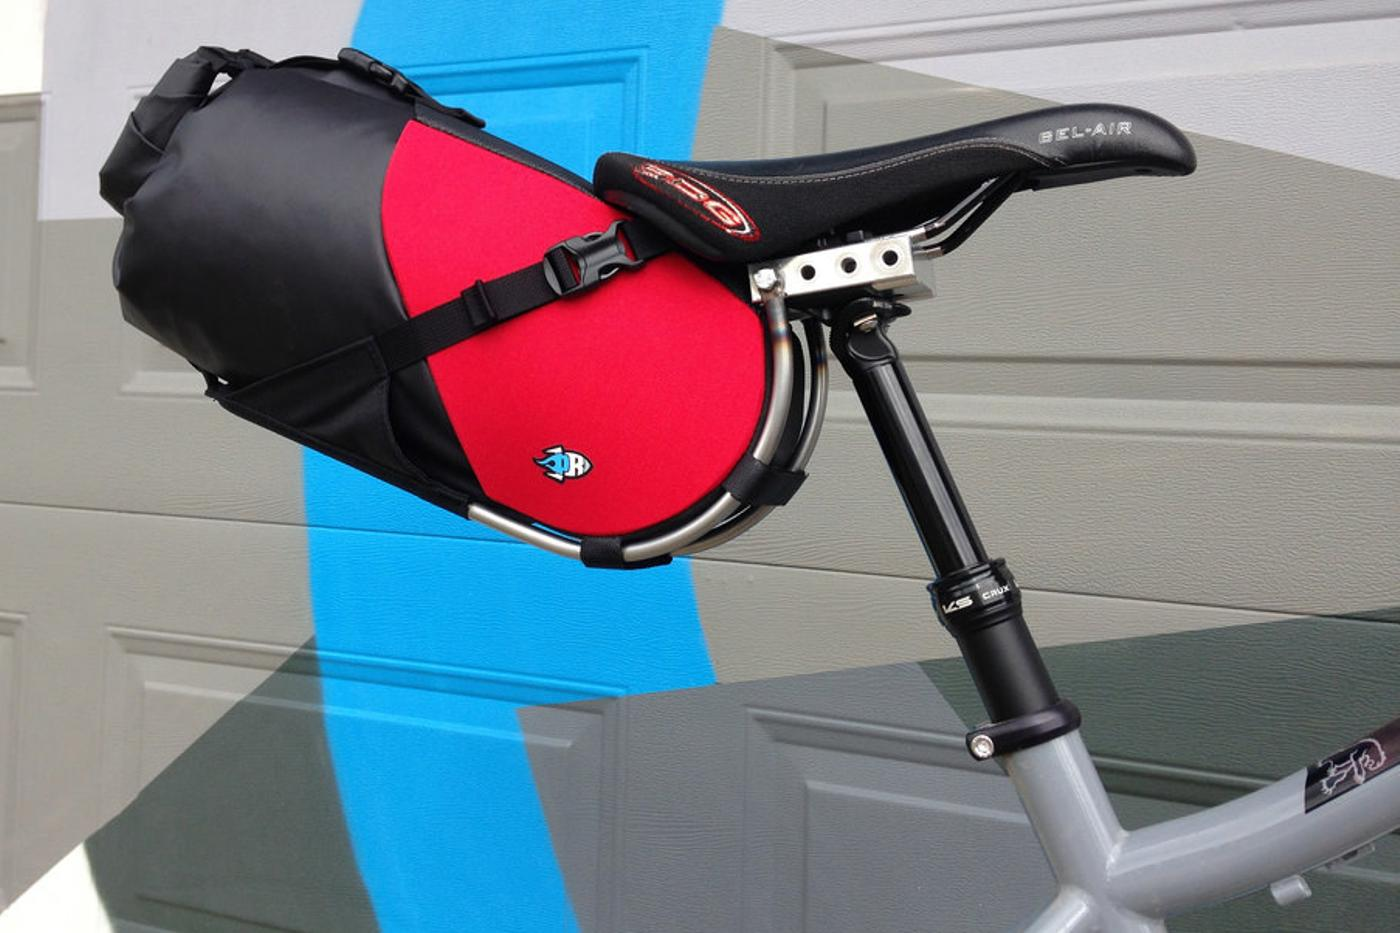 Porcelain Rocket's New Dropper Post-Friendly Saddle Bag